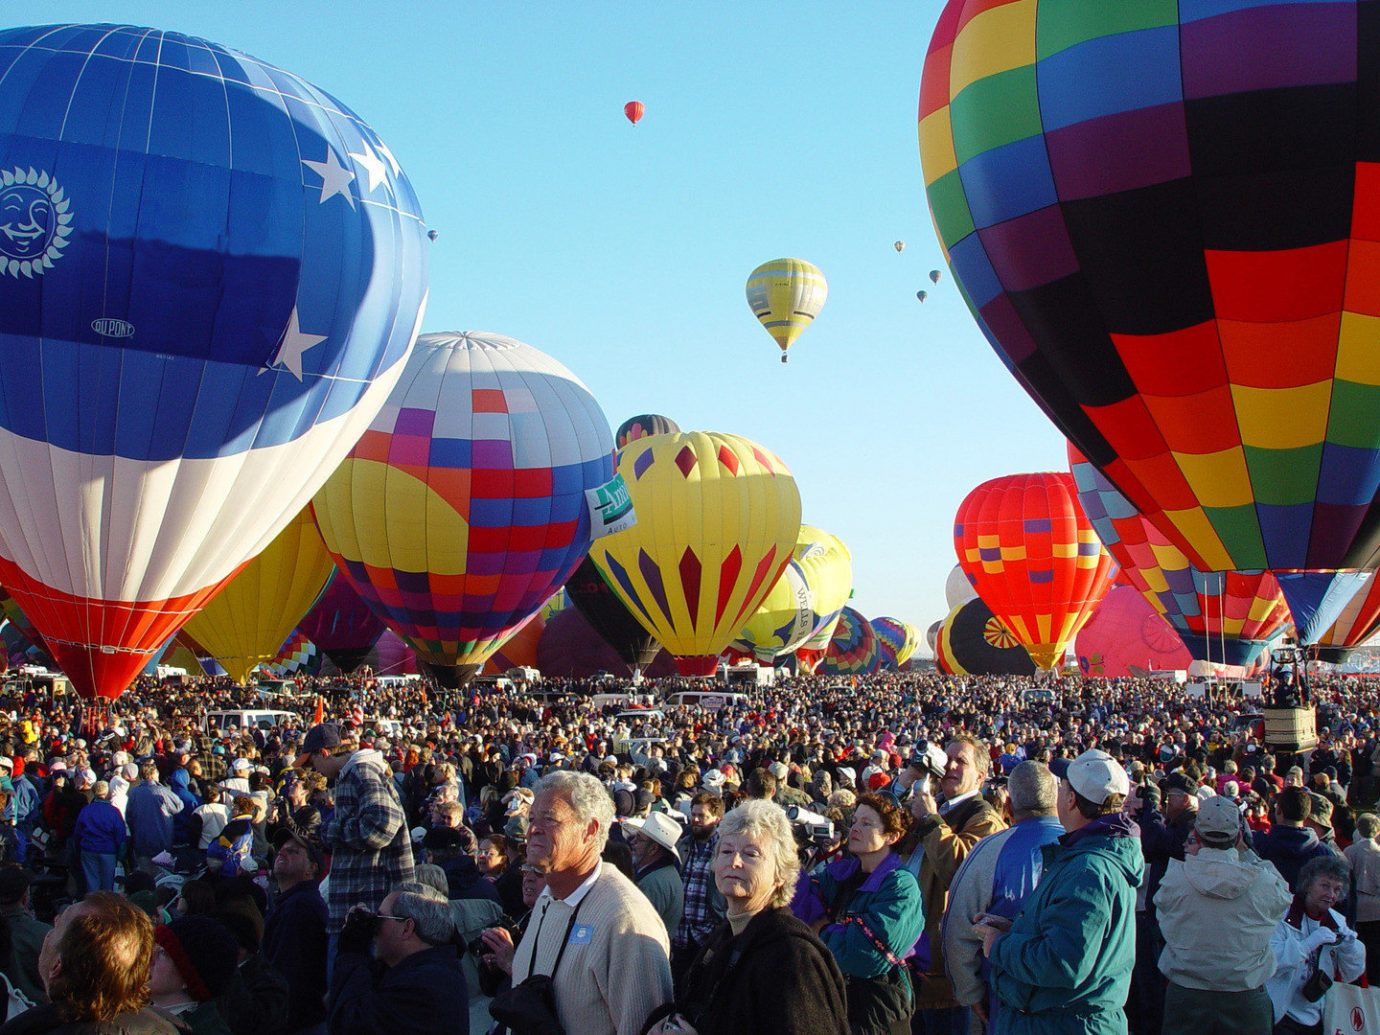 Trip Ideas aircraft balloon transport sky person crowd Hot Air Balloon hot air ballooning outdoor colorful vehicle people atmosphere of earth toy event colored huge